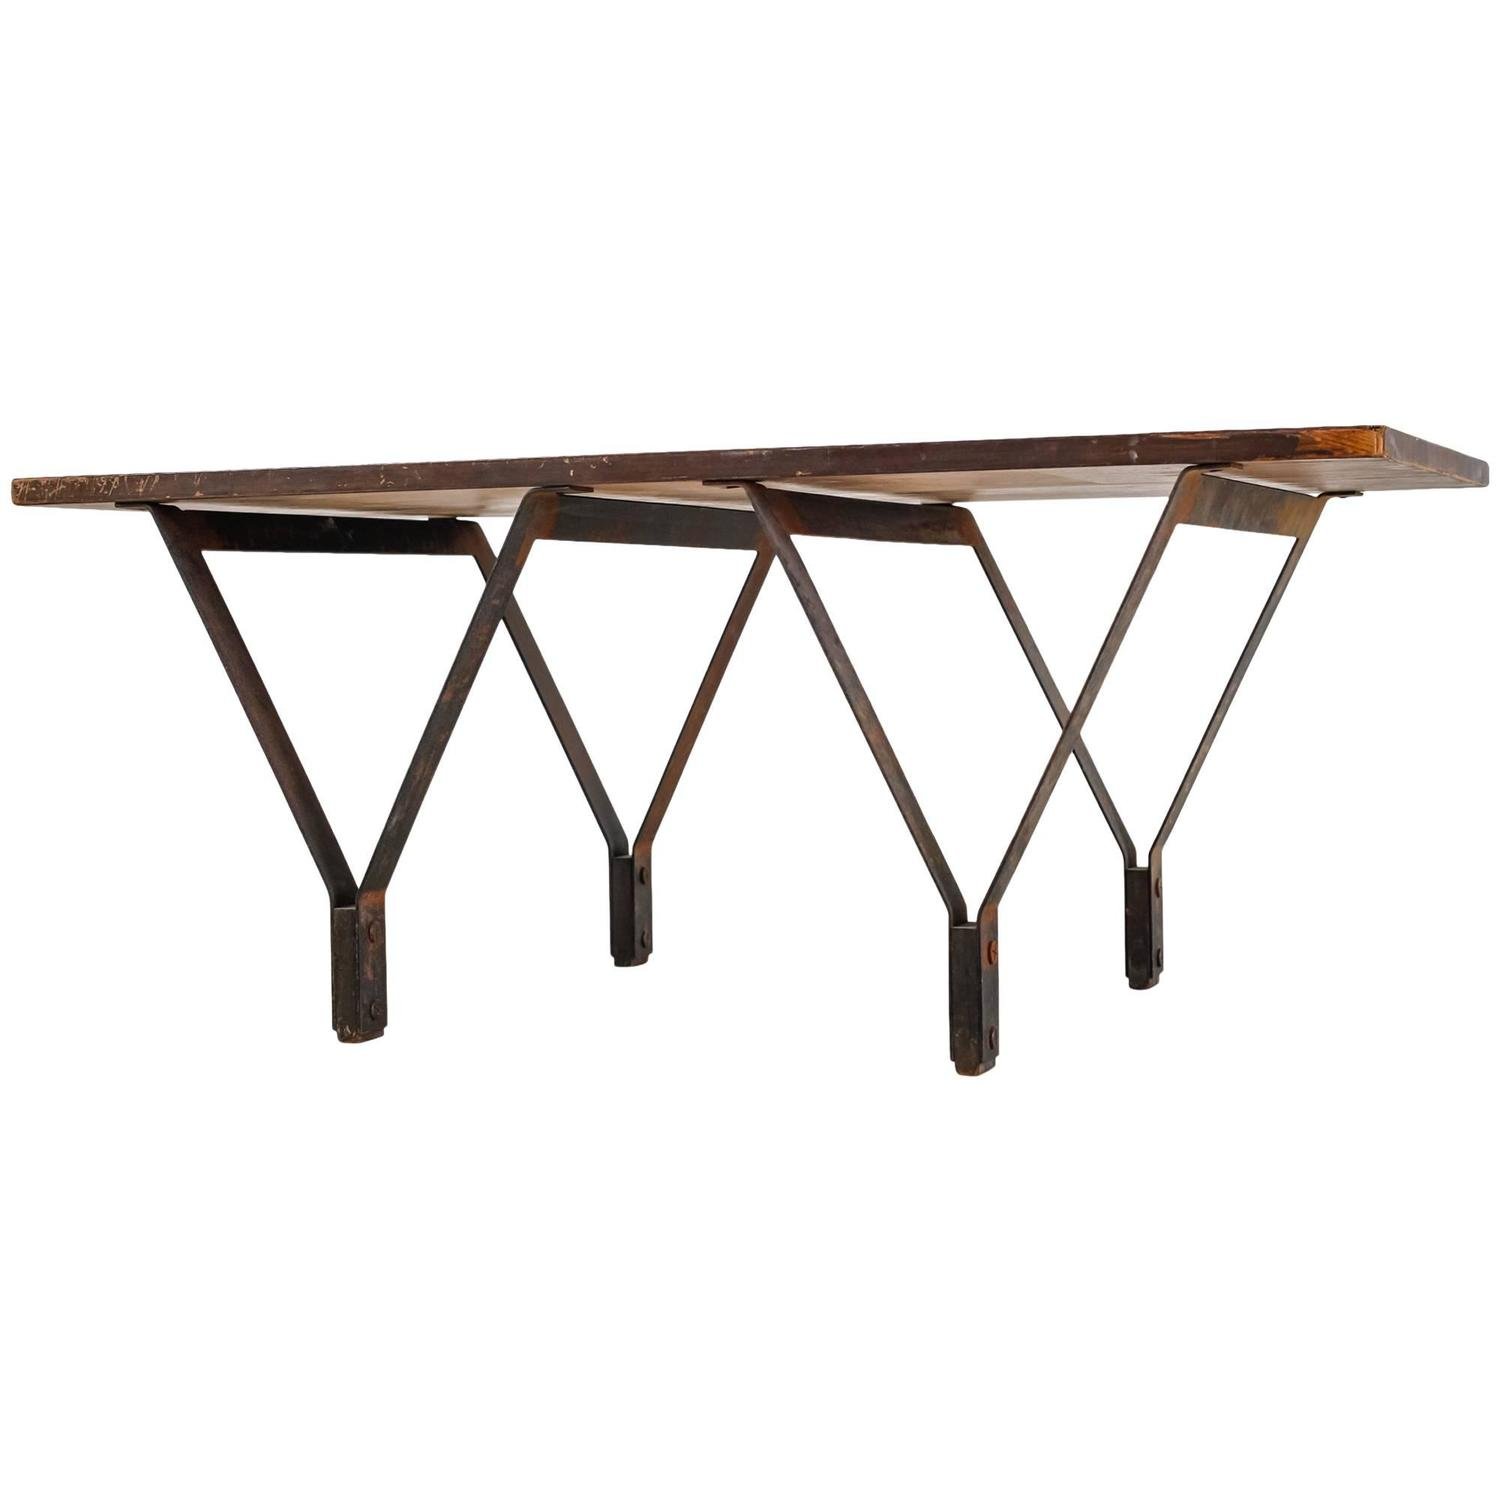 Marvelous photograph of BBPR Metal and Wood Coffee Table Italy 1950s For Sale at 1stdibs with #9E5F2D color and 1500x1500 pixels